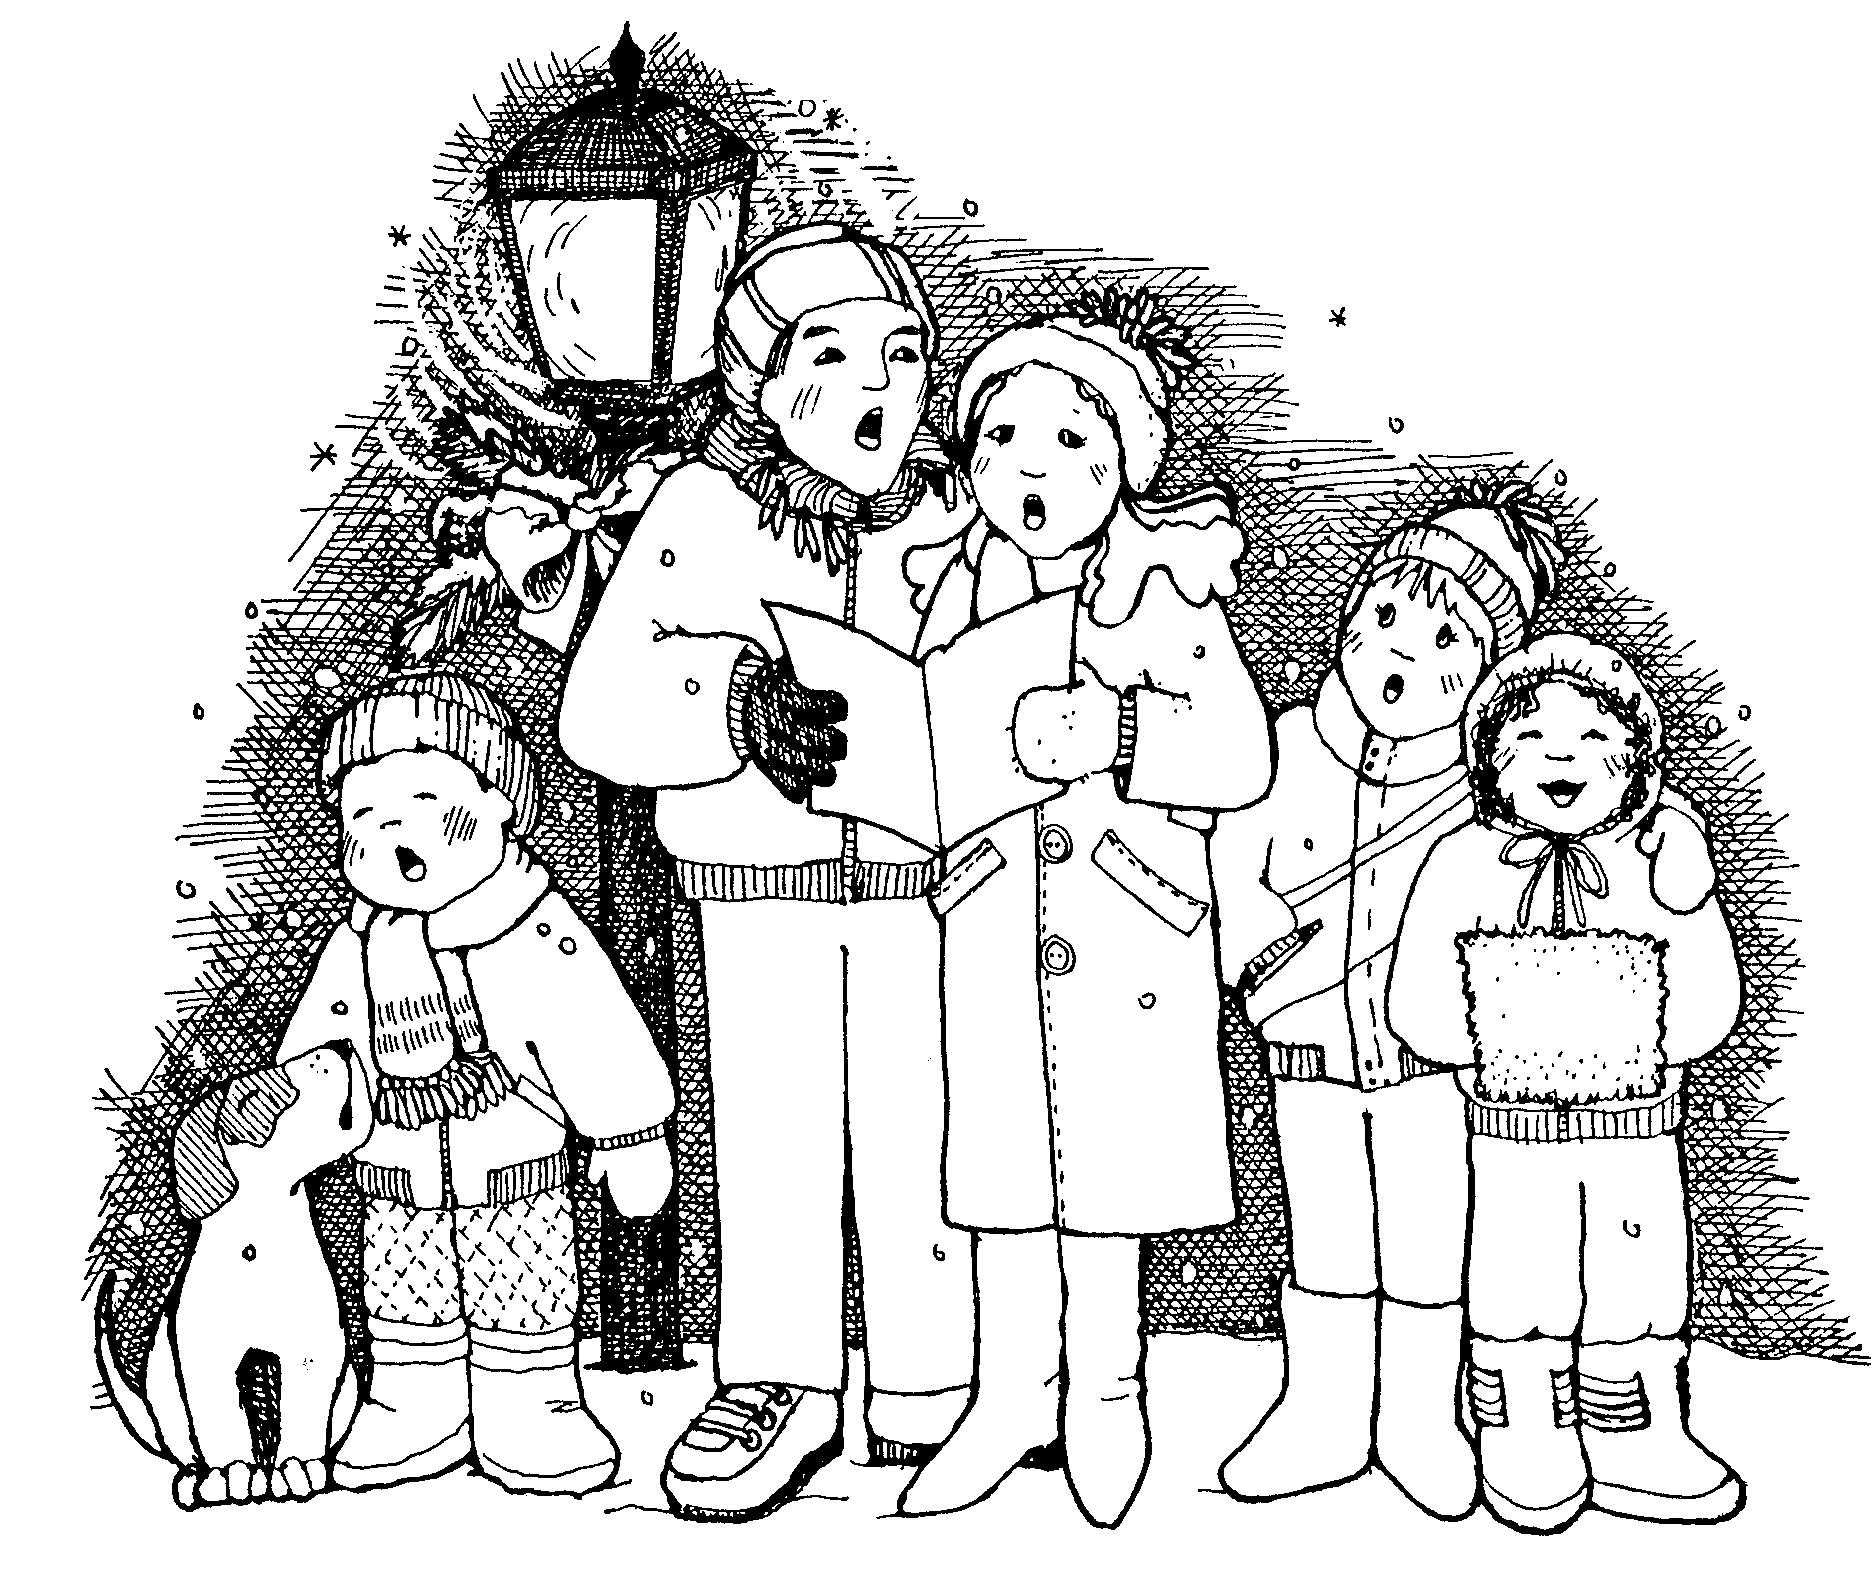 Christmas carollers clipart black and white jpg royalty free download Free Christmas Cliparts Carolers, Download Free Clip Art, Free Clip ... jpg royalty free download